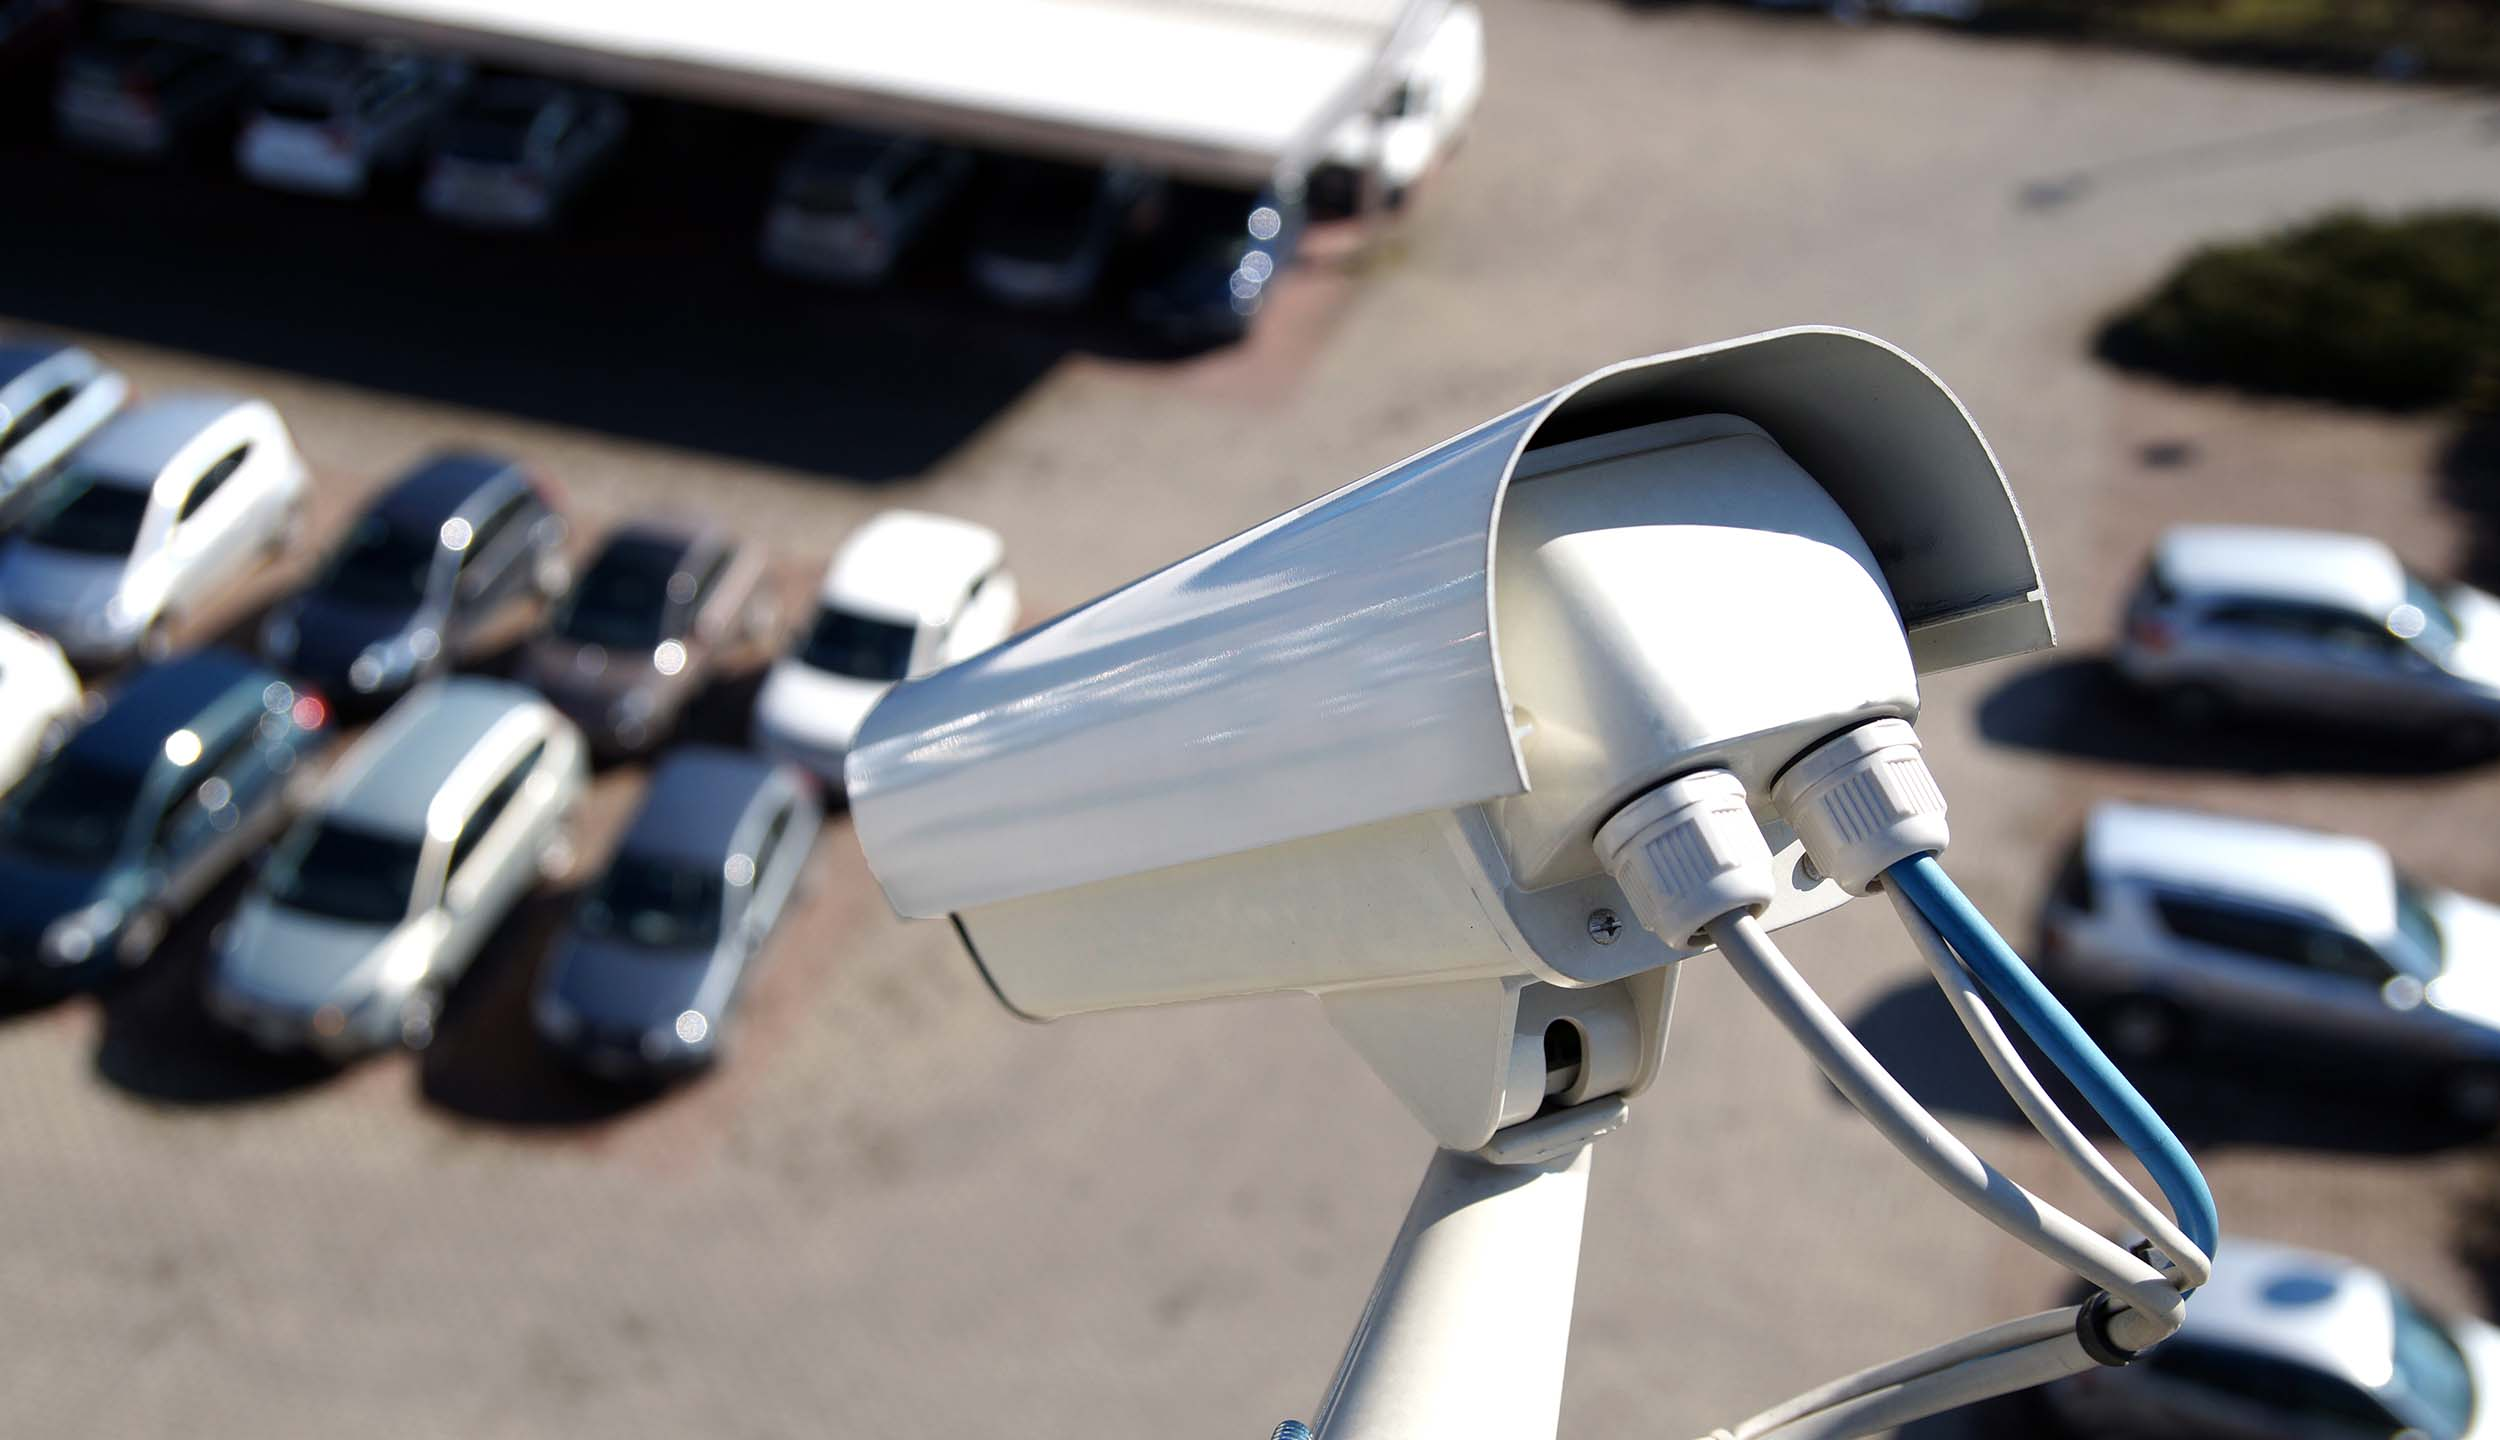 Business Security Cameras and Video Surveillance